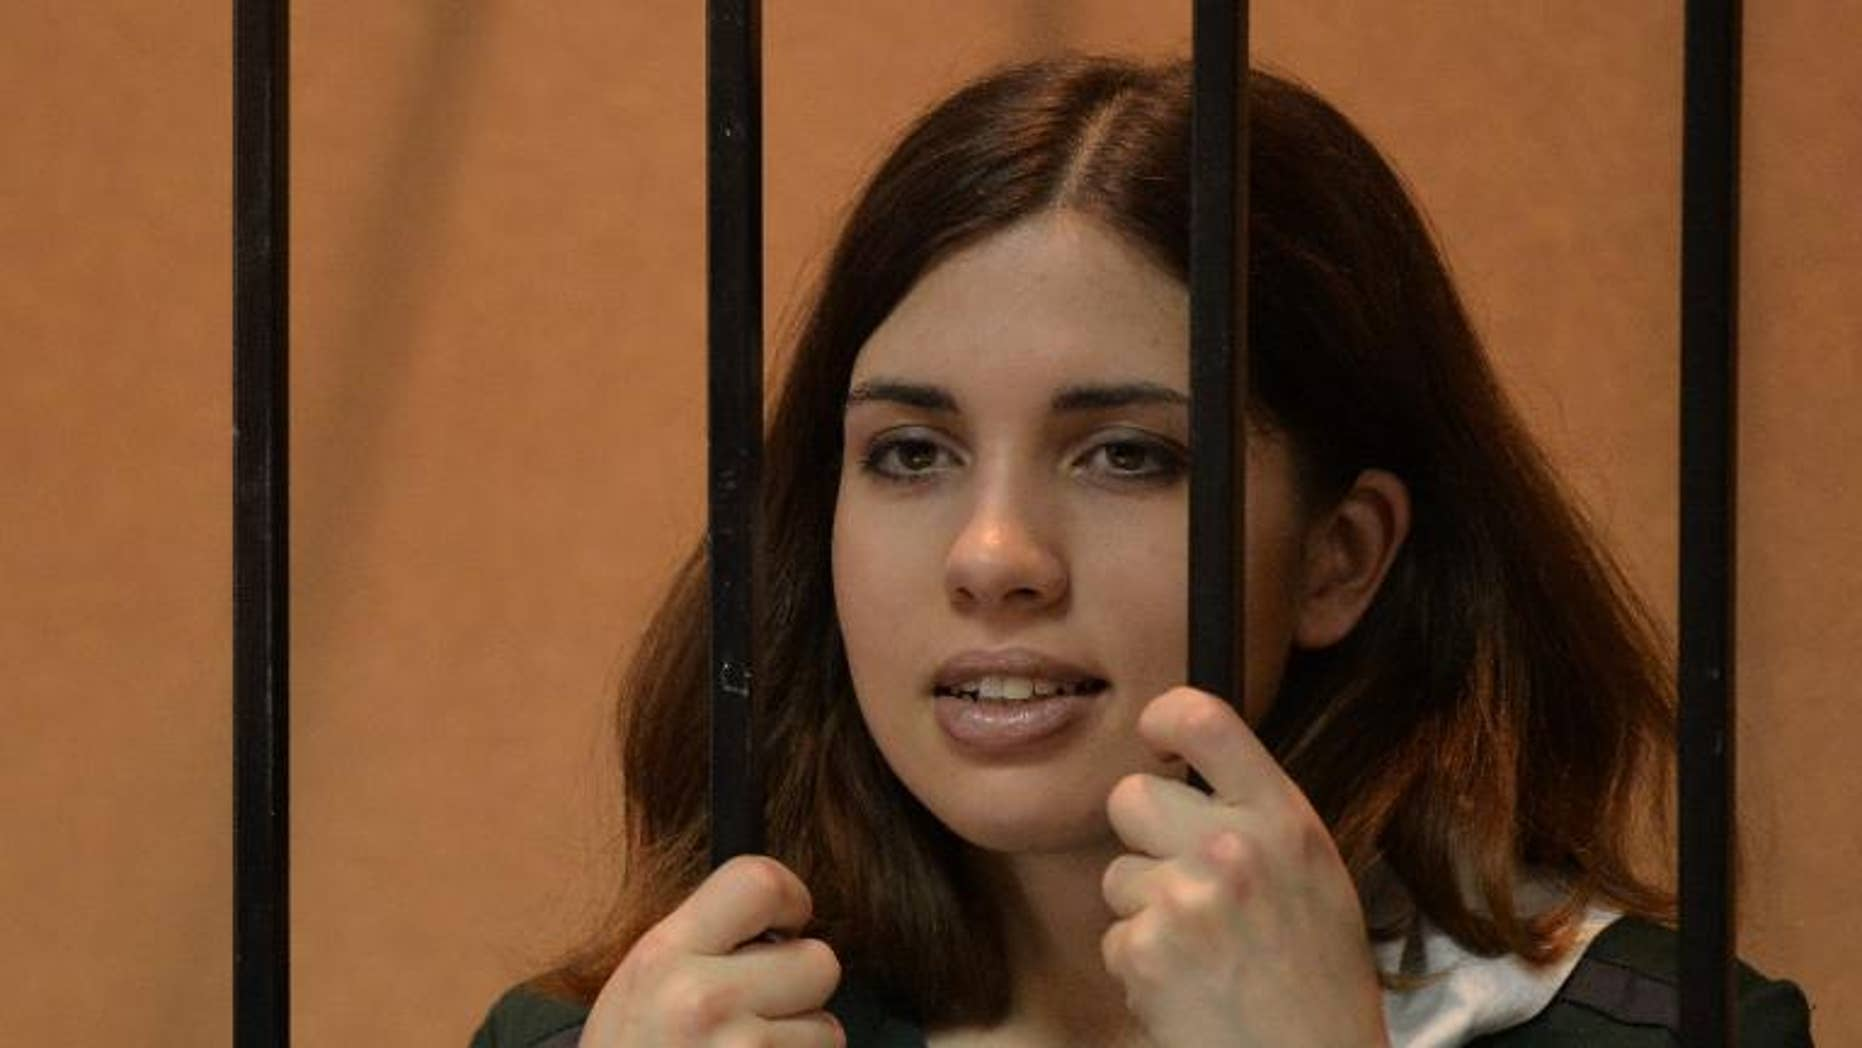 """""""Pussy Riot"""" punk Nadezhda Tolokonnikova waits in the defendant's cage at a courthouse in Zubova Polyana, on April 26, 2013."""